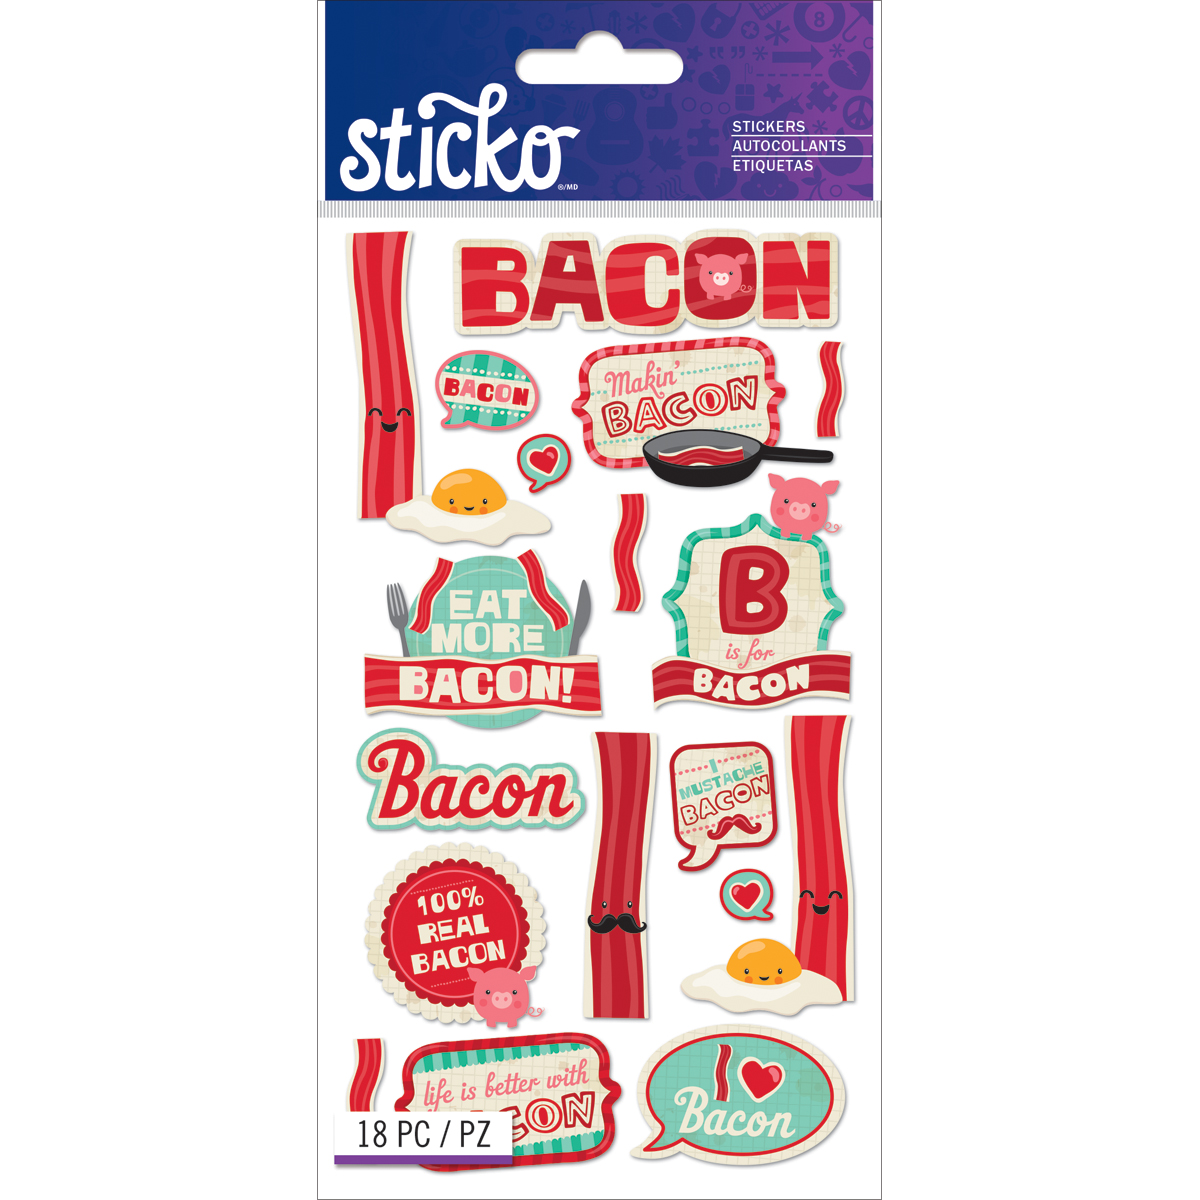 Sticko Bacon Stickers